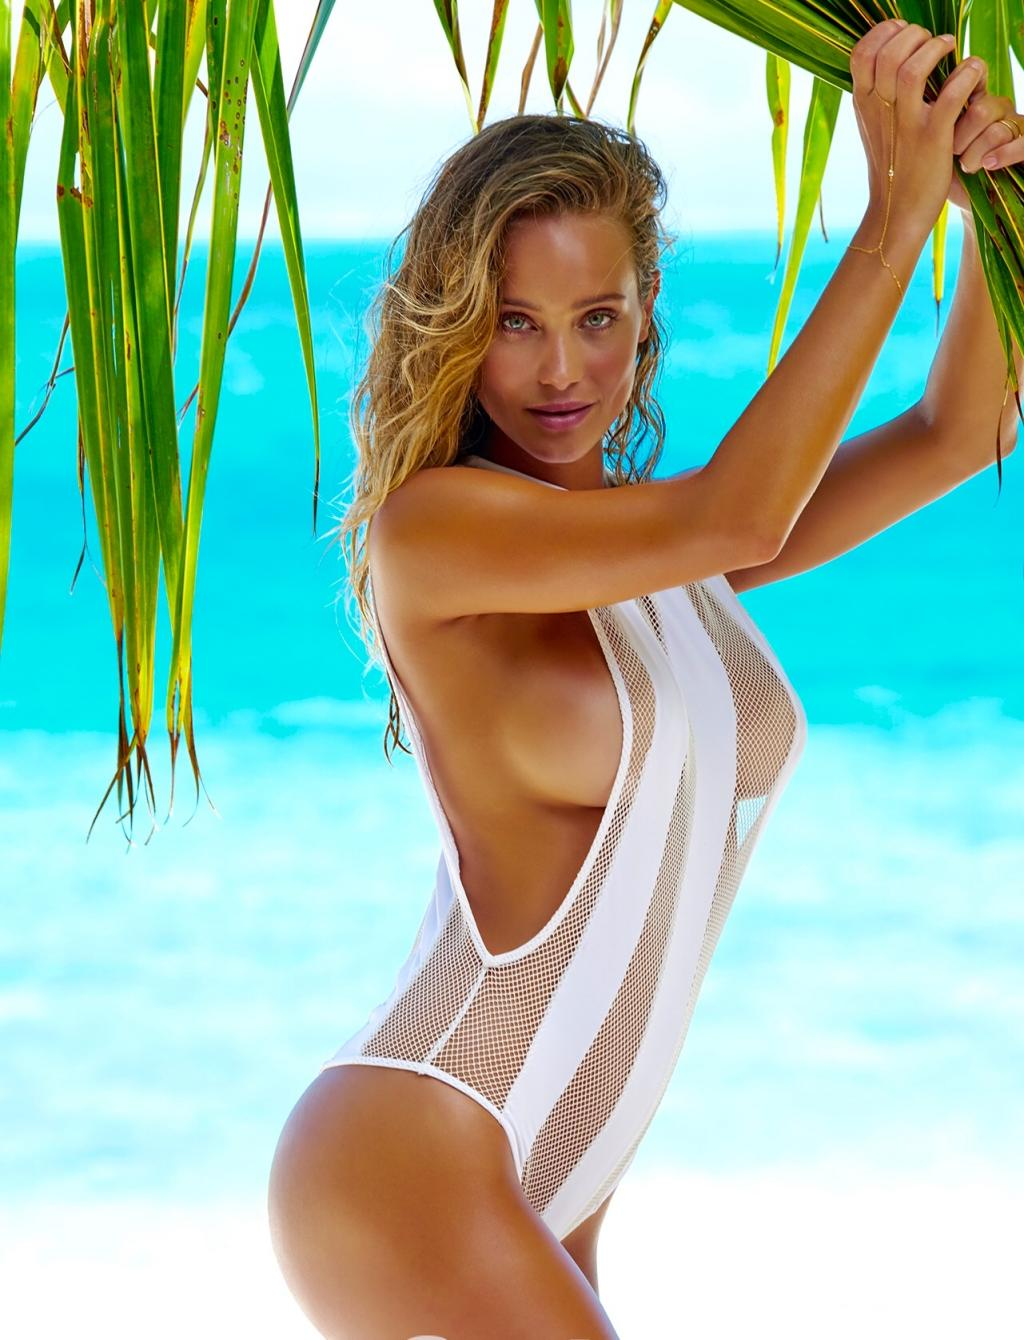 Hannah Davis in a Sexy White Bikini on the Beach by crenk